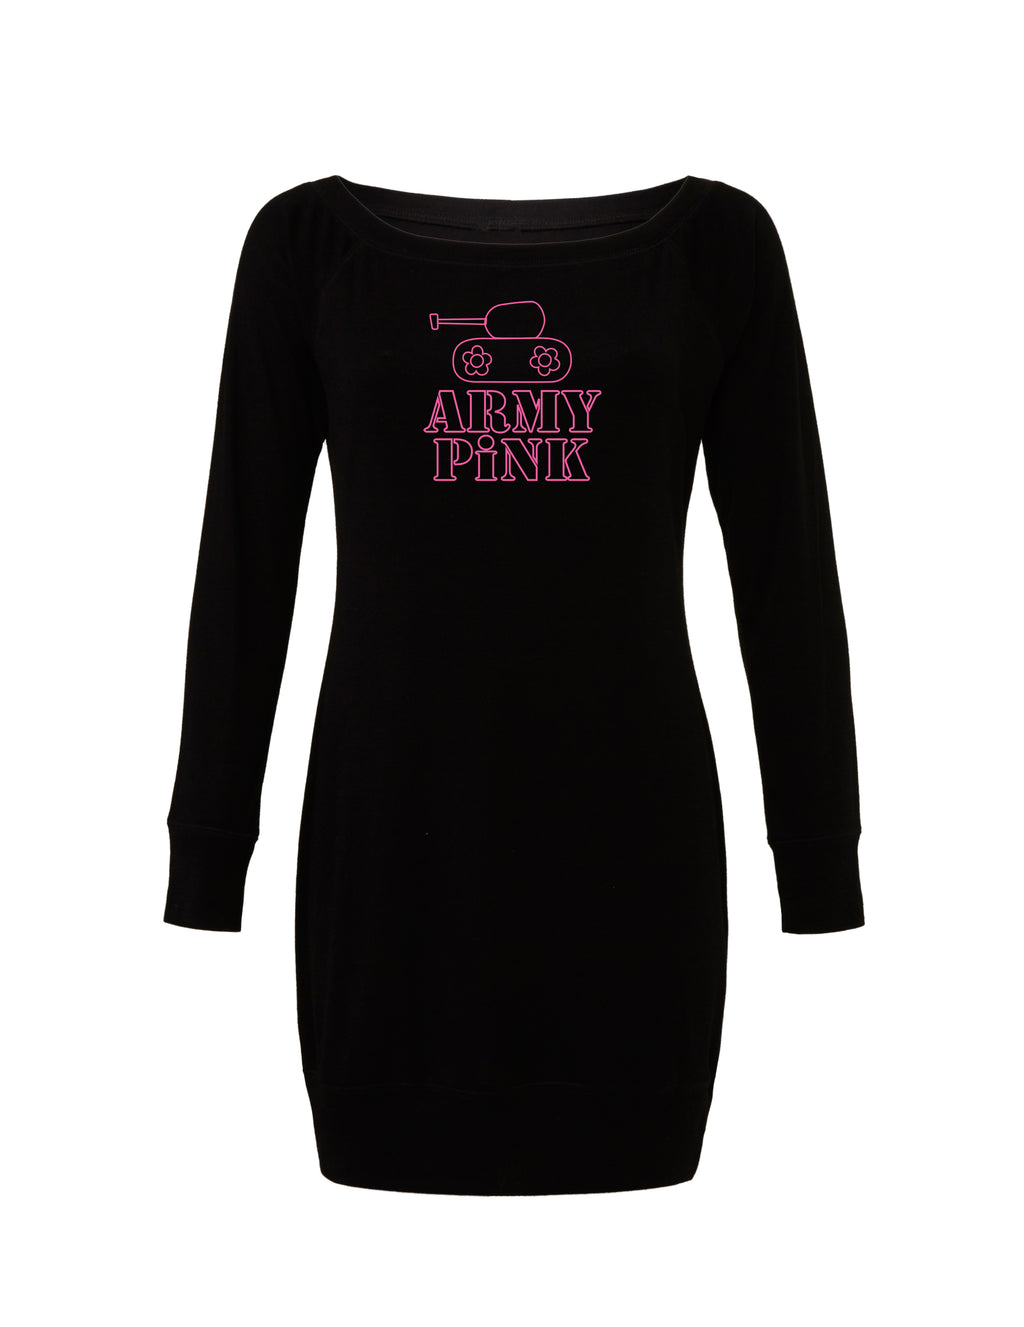 Black Lightweight Sweater Dress with pink tank outline graphic for 55.00 at ARMY PINK